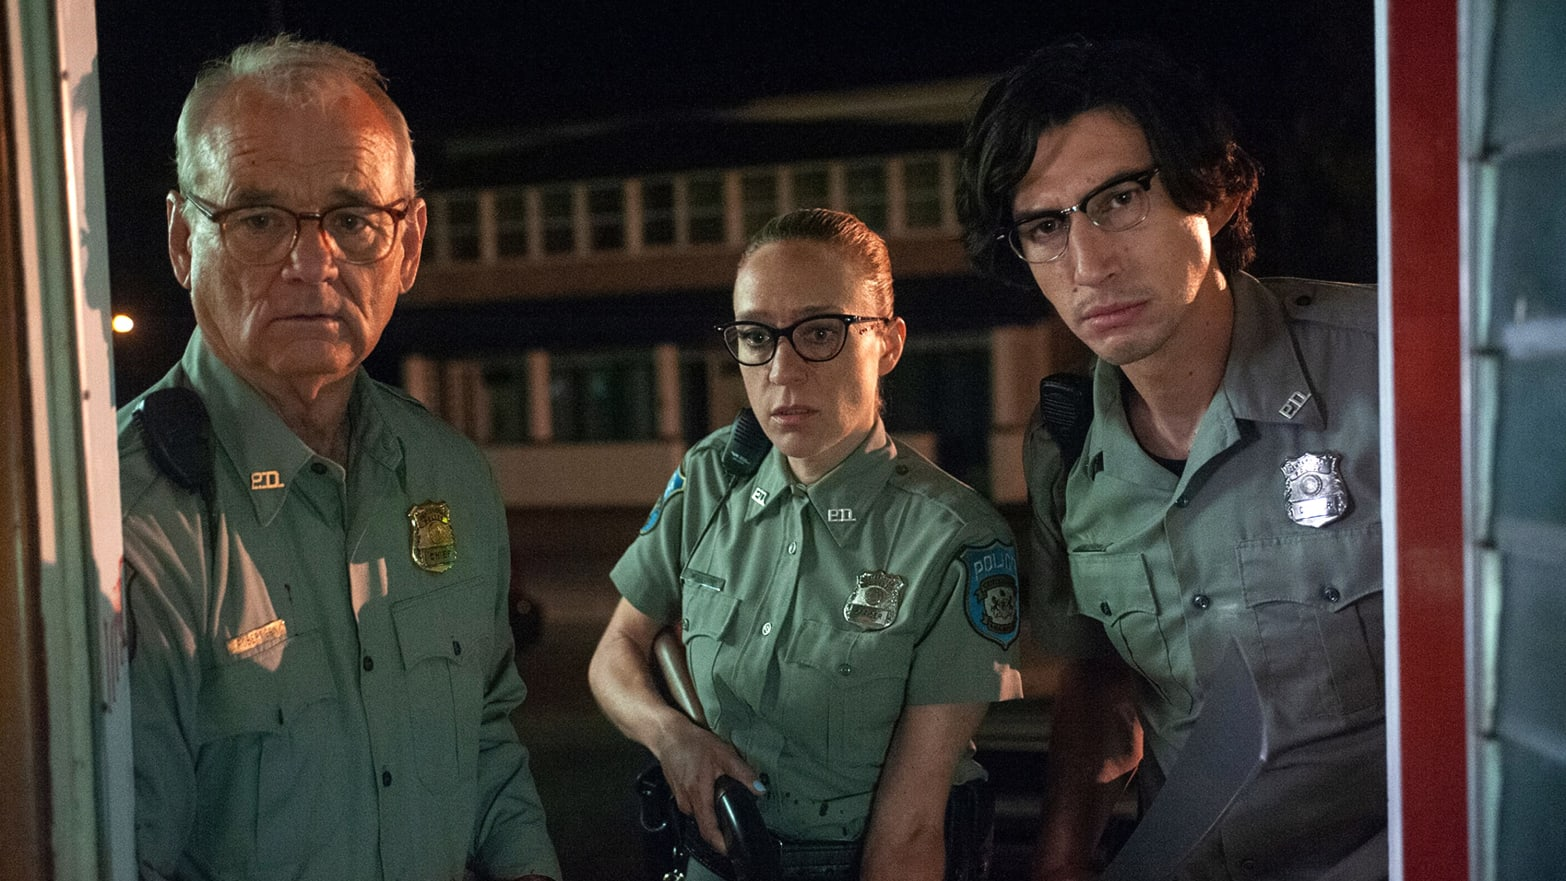 Cannes' 'The Dead Don't Die': Bill Murray and Adam Driver Fight Zombies in MAGA-Infested Small-Town America